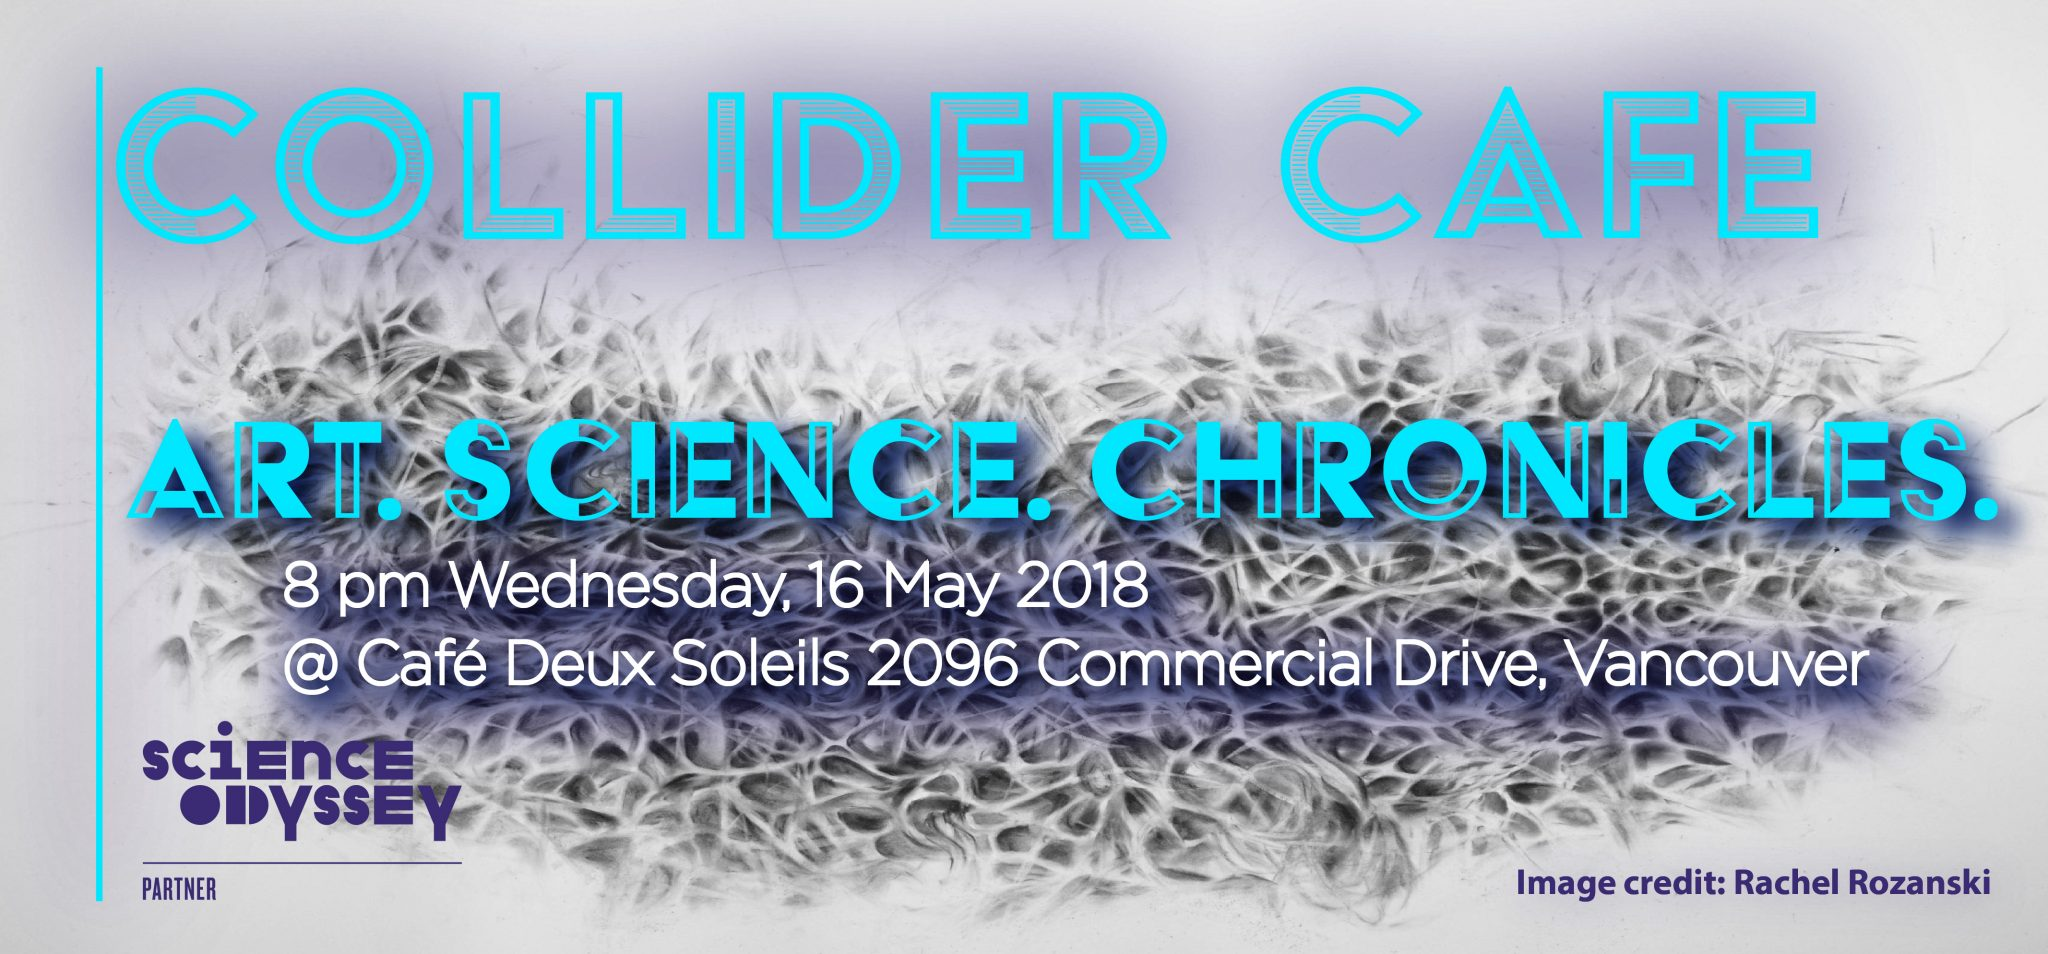 Collider Cafe: Art. Science. Chronicles.